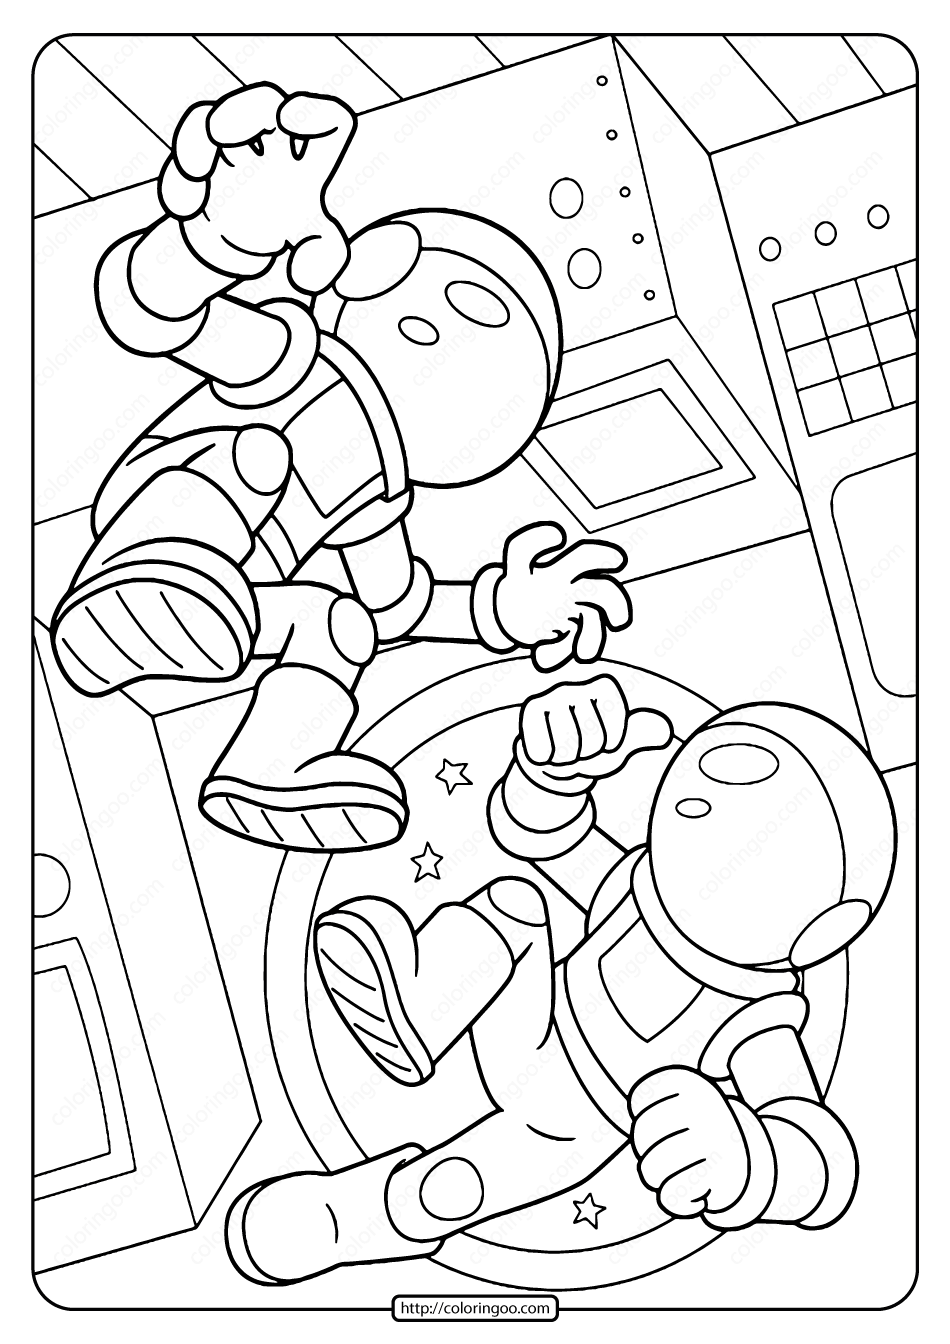 astronaut for coloring astronaut colouring pages realistic coloring pages for coloring astronaut